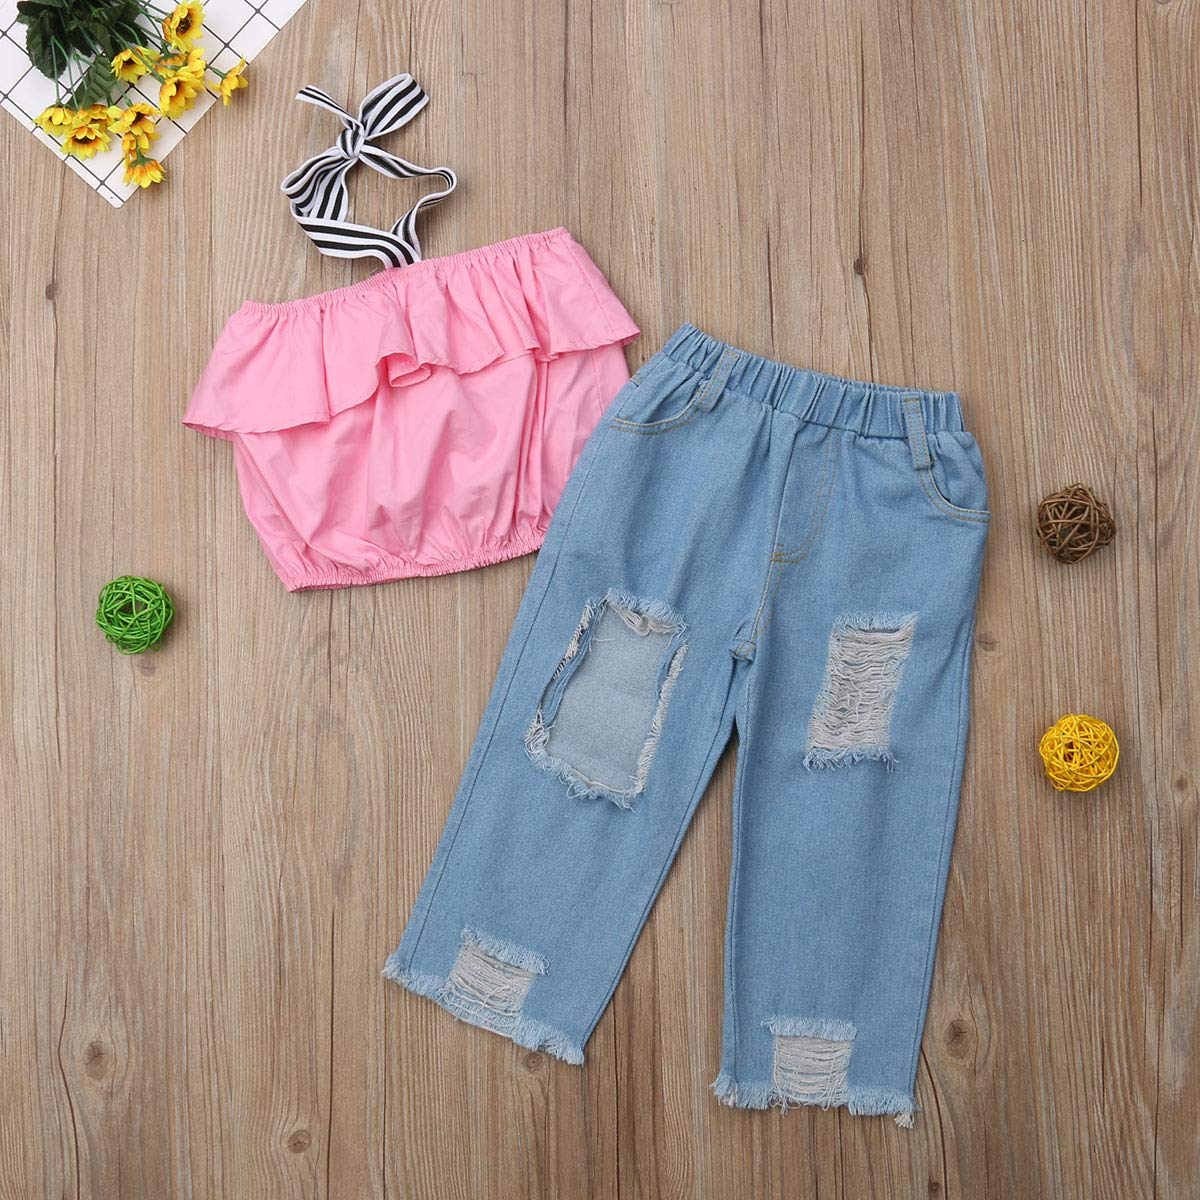 Greenafter Kid Baby Girls Ruffle Tops Destroyed Ripped Jeans 2pcs Clothing Outfit Set